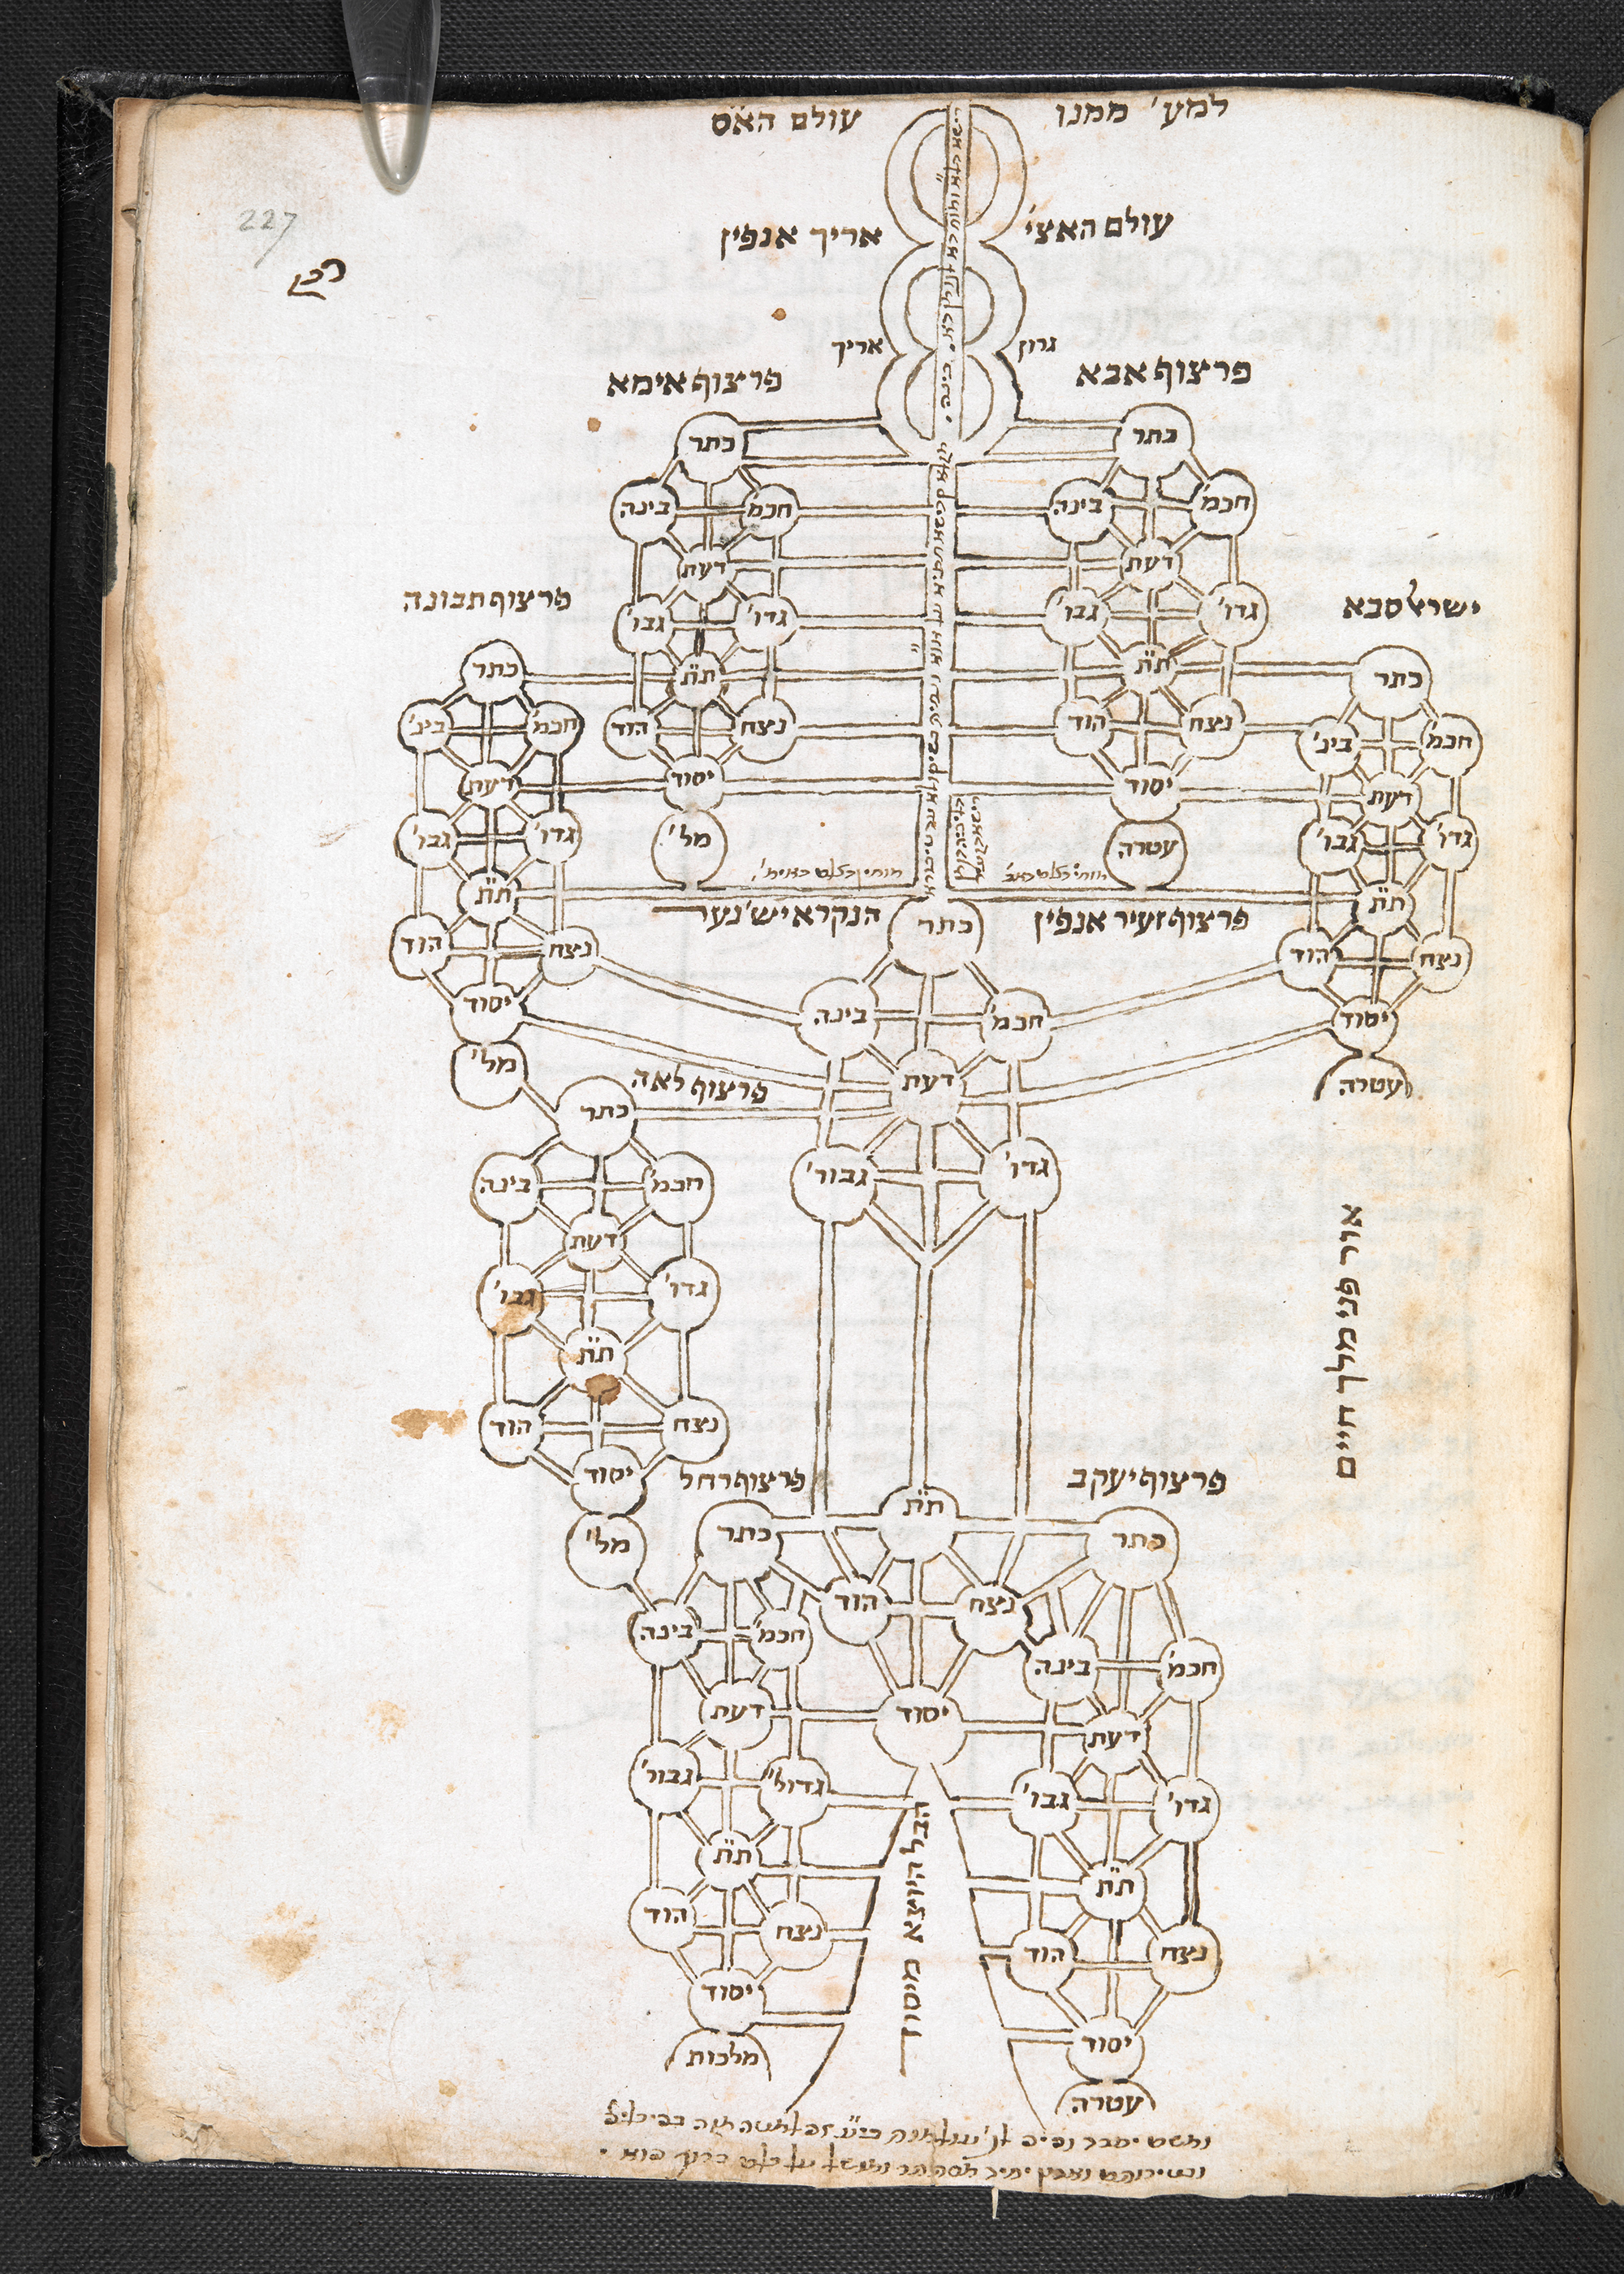 The denary tree, kaleidoscopically multiplied, Kabbalah: A treatise by Ḥayim Vital, with additions by other kabbalists, Add MS 27006, Hebrew Manuscripts Digitisation Project, British Library